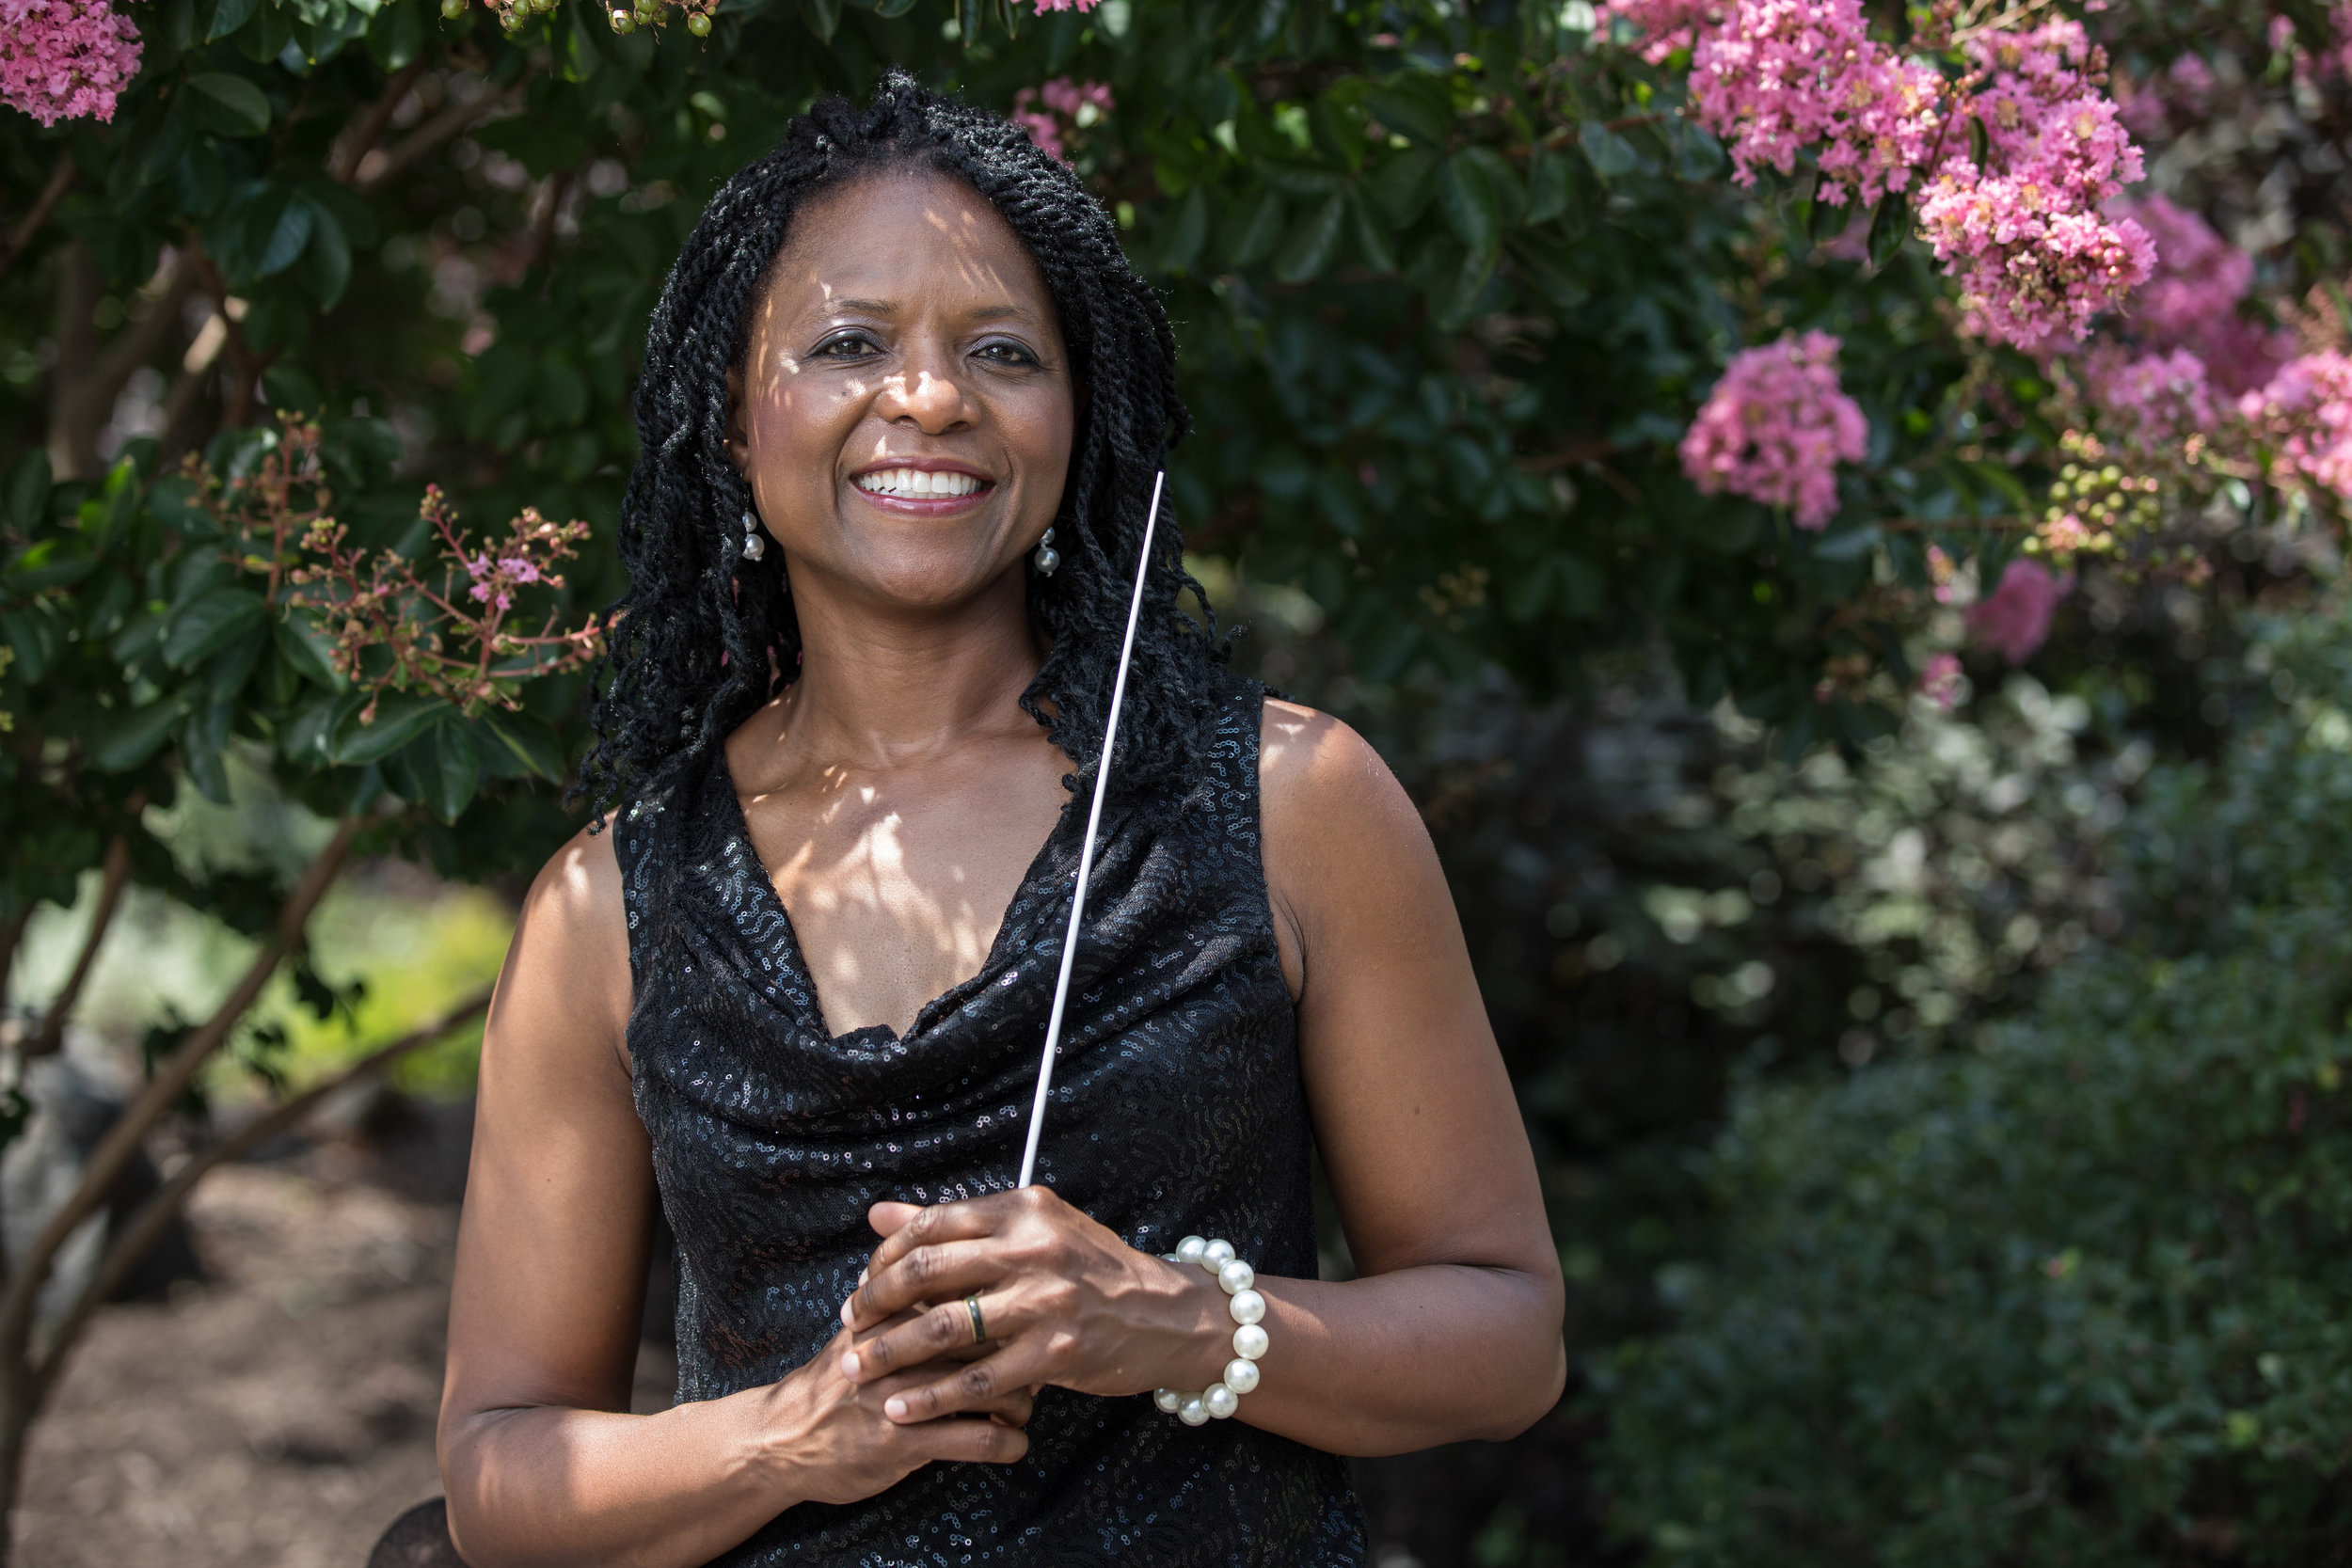 Introducing Veronica Jackson - DC Strings Orchestra New Music Director & Conductor